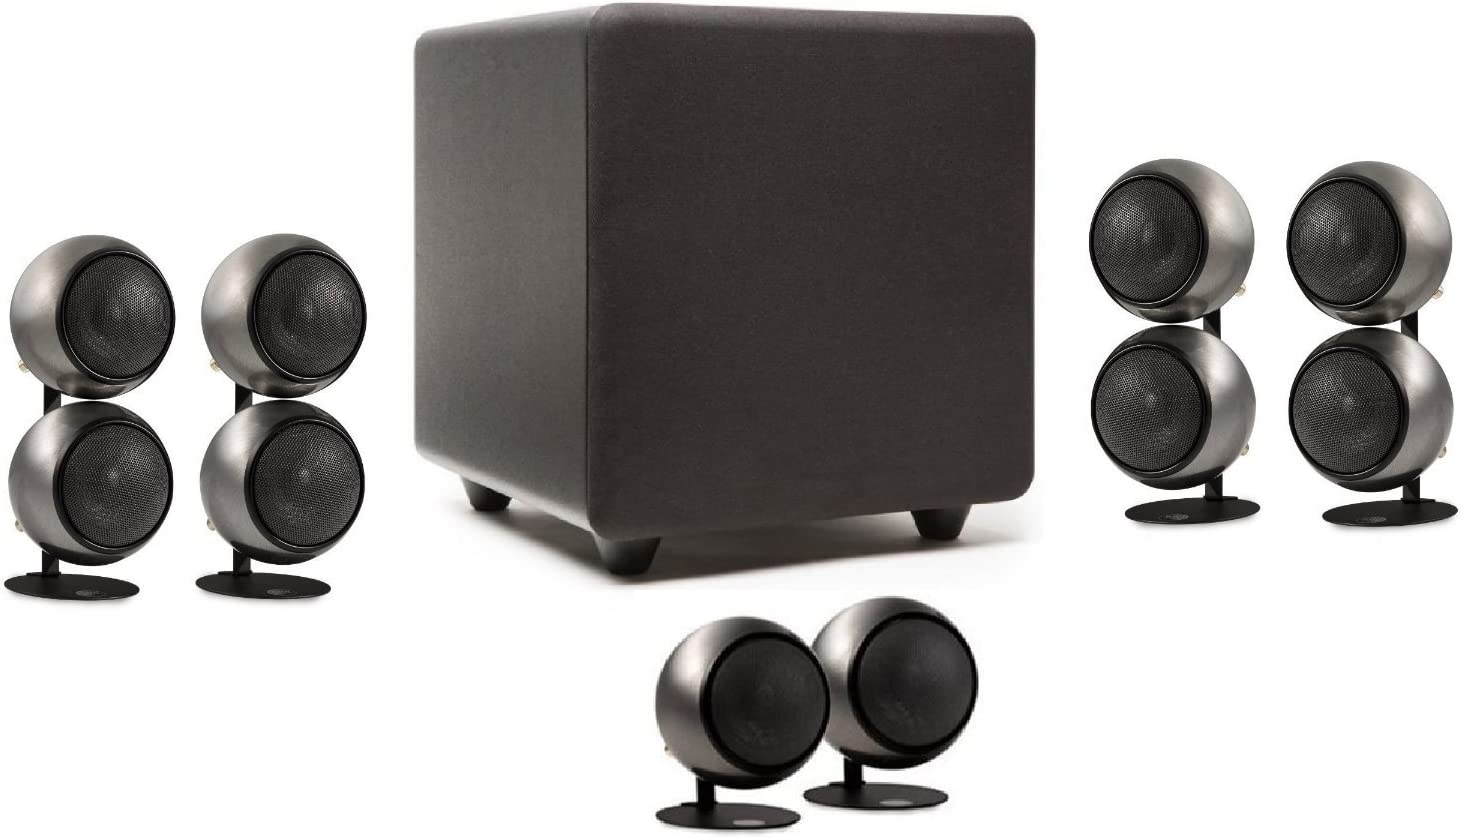 Orb Audio 5.1 Home Theater Speaker System (Mod2X and subONE) in Hand Polished Steel